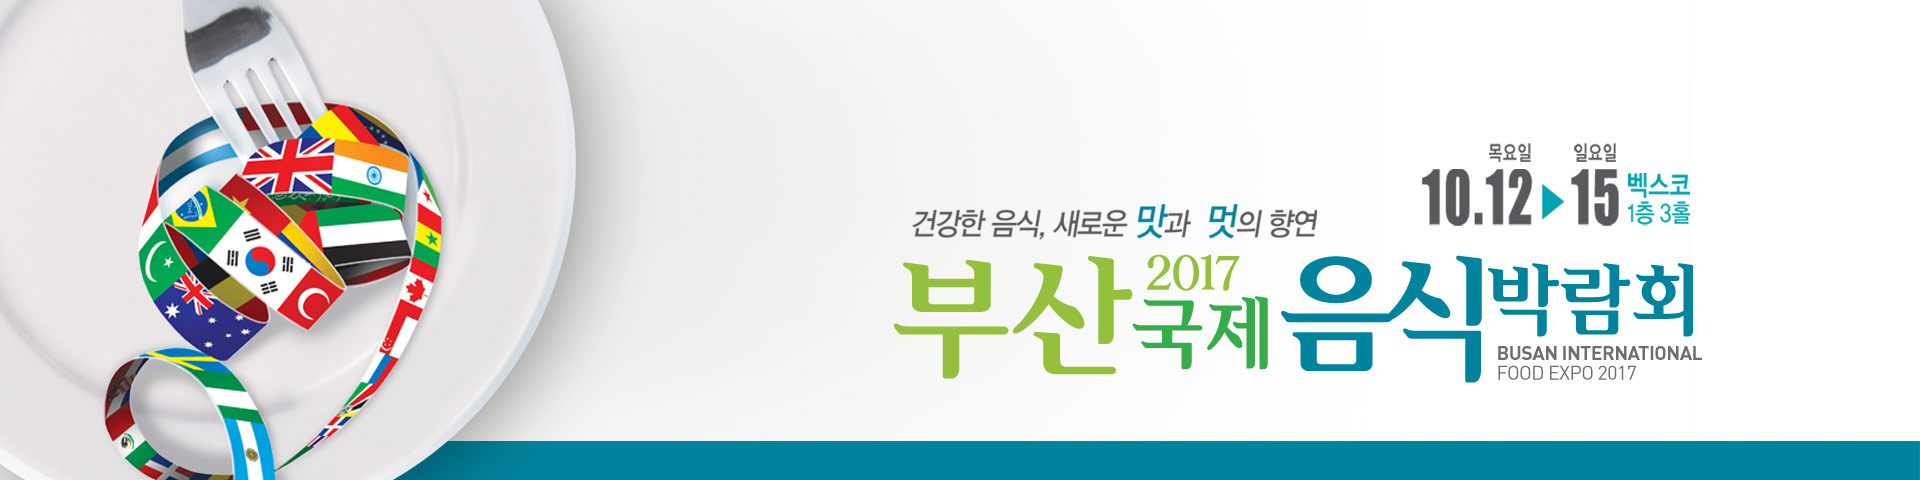 Busan International Food Expo